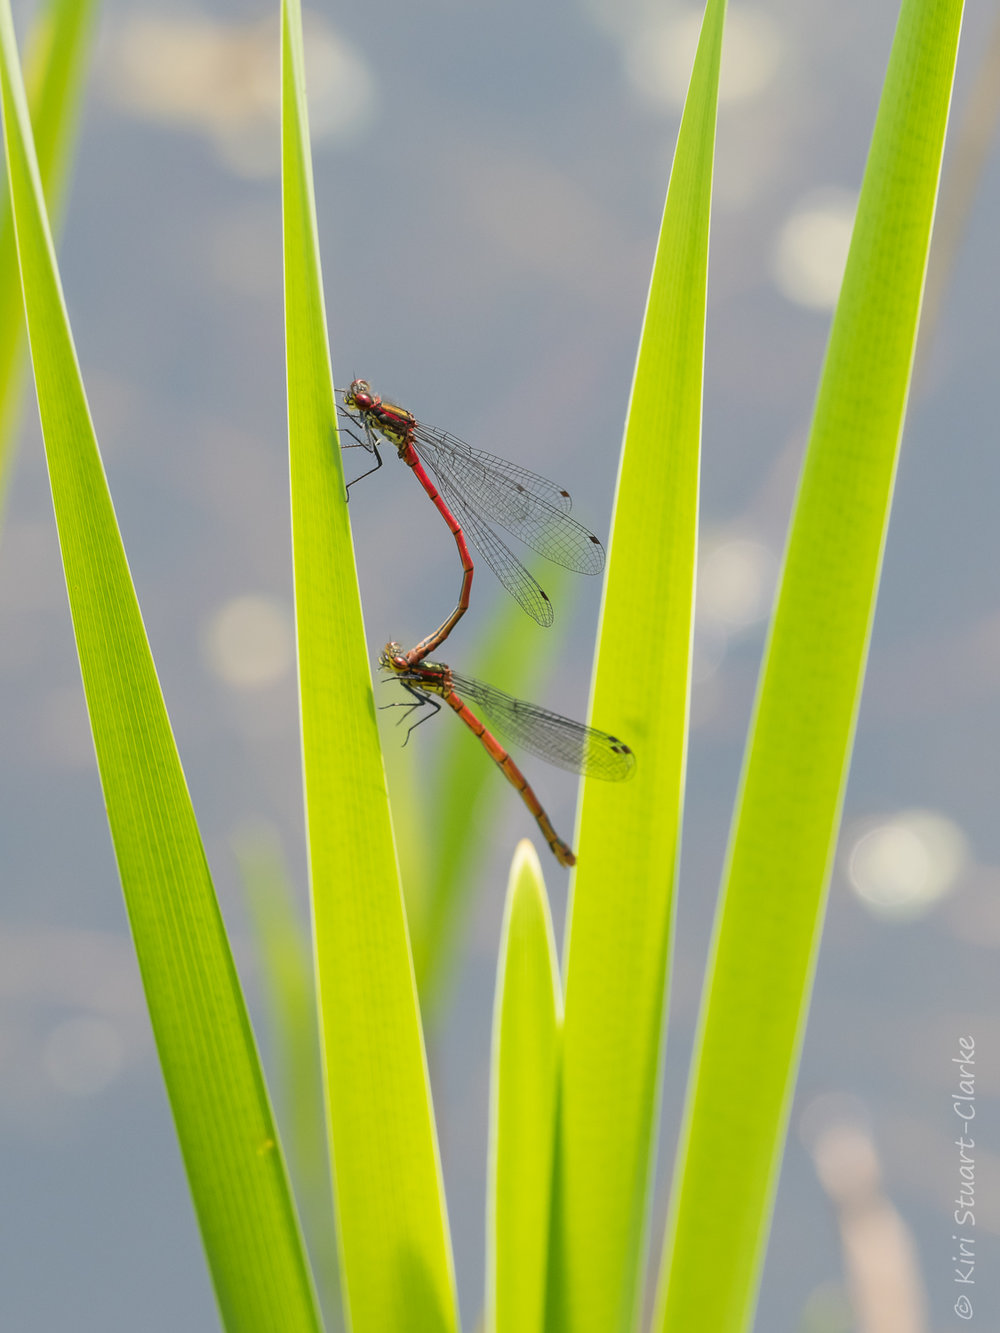 My latest damselfly species sighting the Large Red damselfly,  Pyrrhosoma nymphula